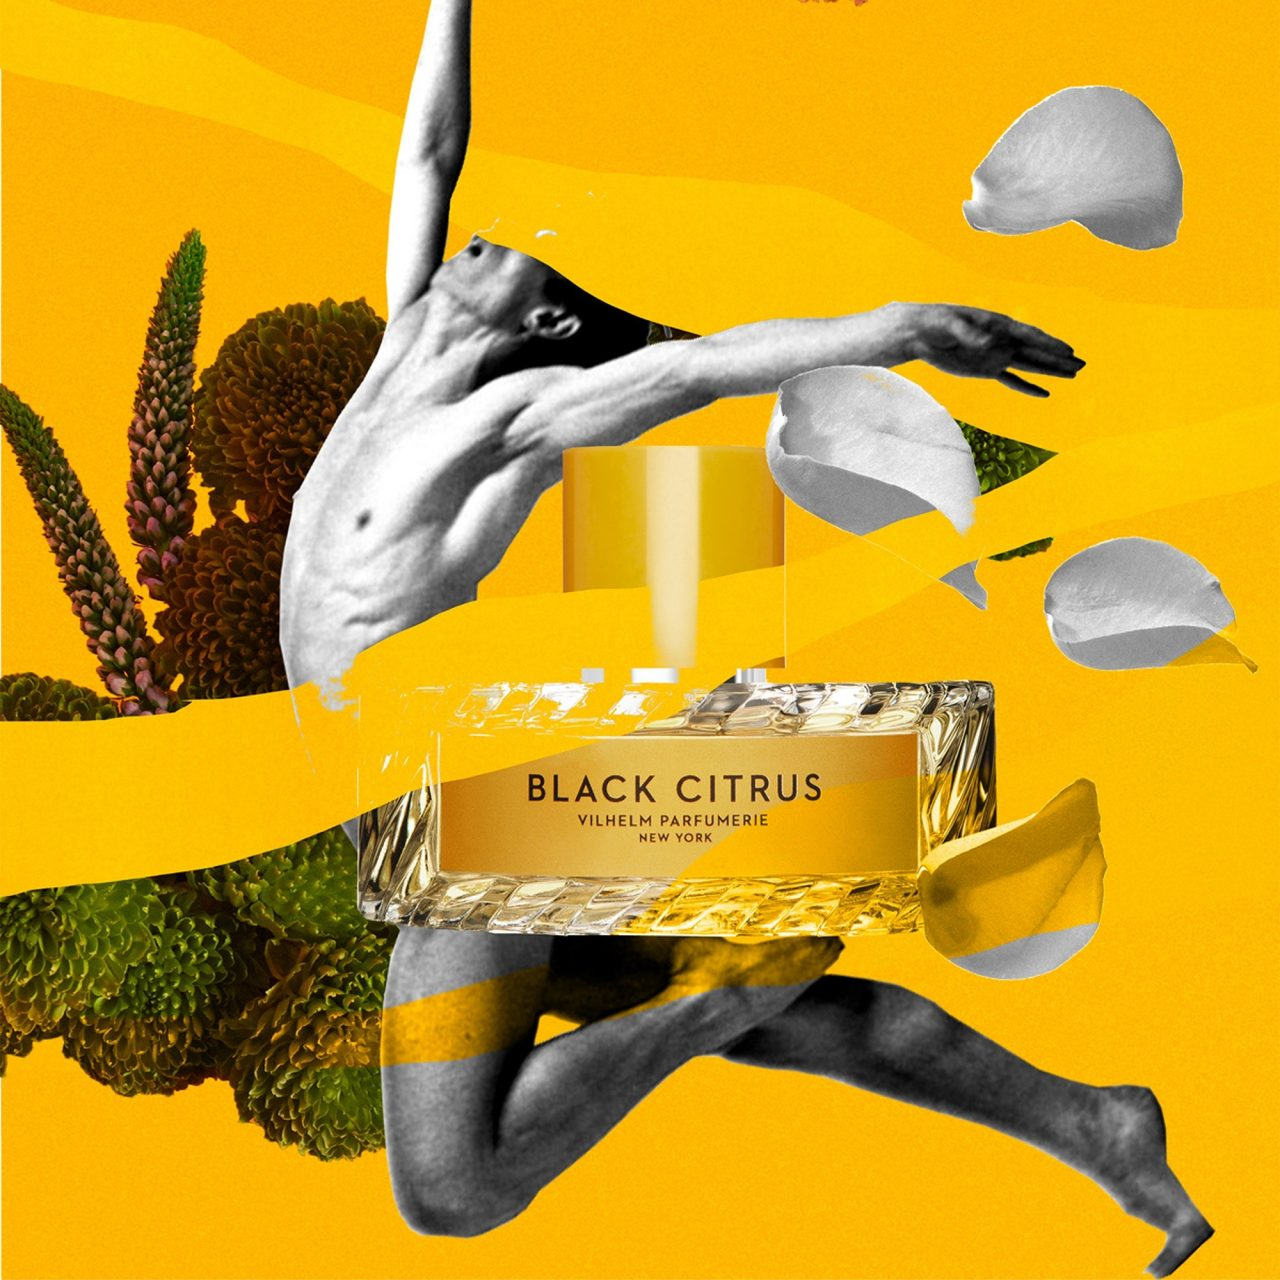 1612357048_black-citrus-visual-1280x1280.jpg